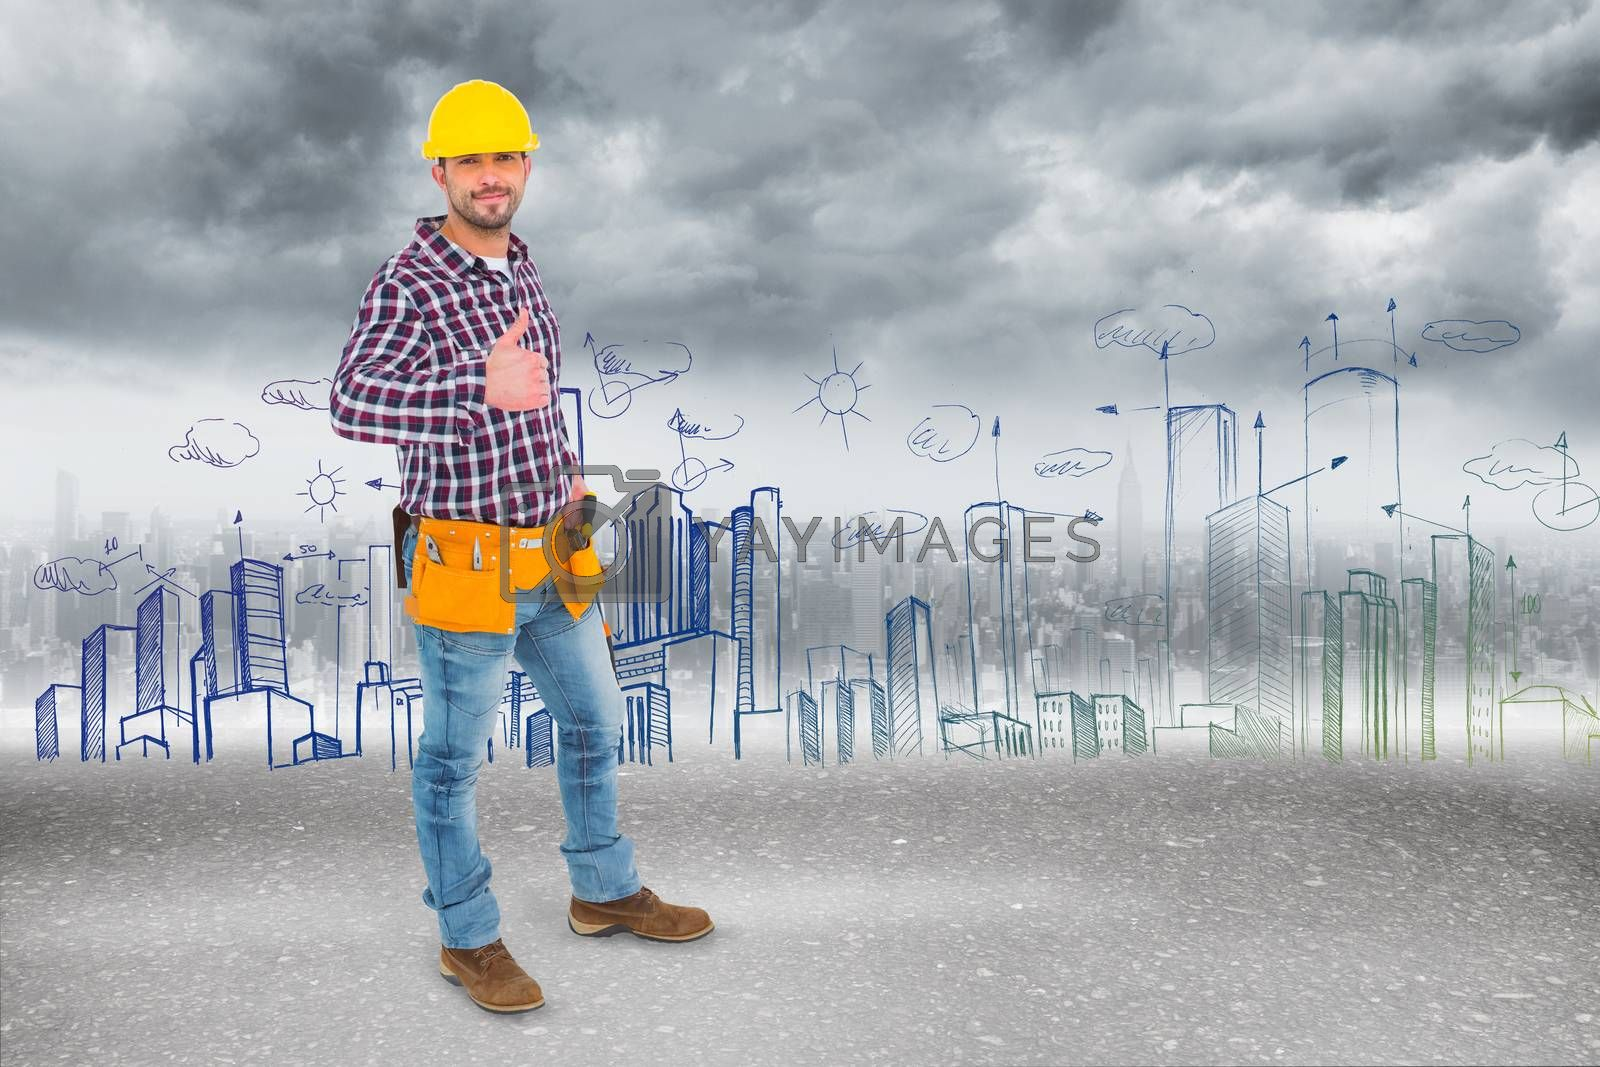 Smiling handyman gesturing thumbs up against road